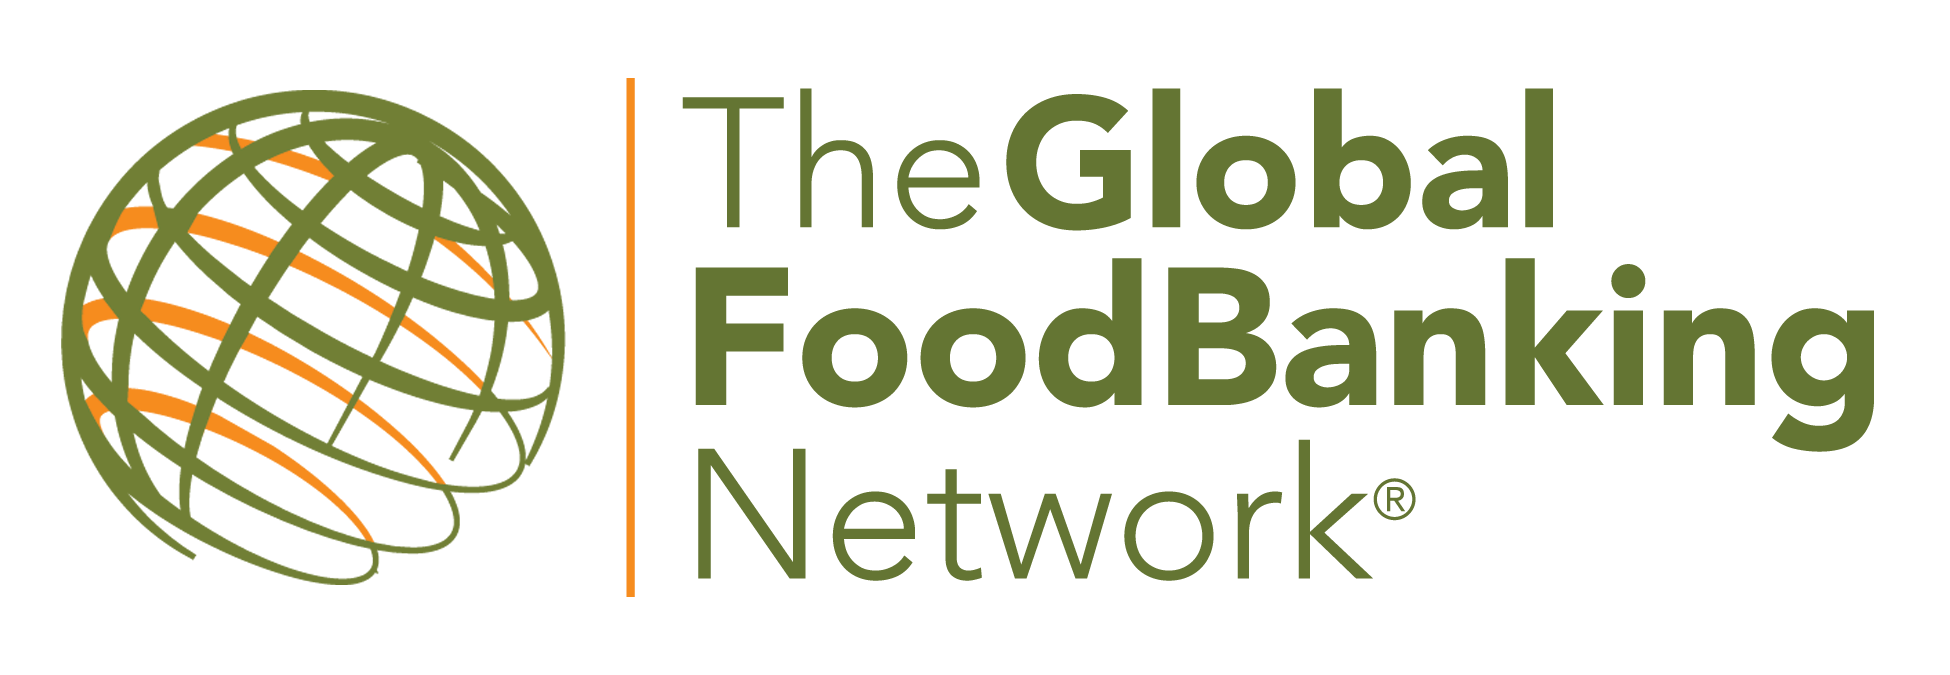 The logo for the Global Foodbanking Network, which reads Global Foodbanking Network